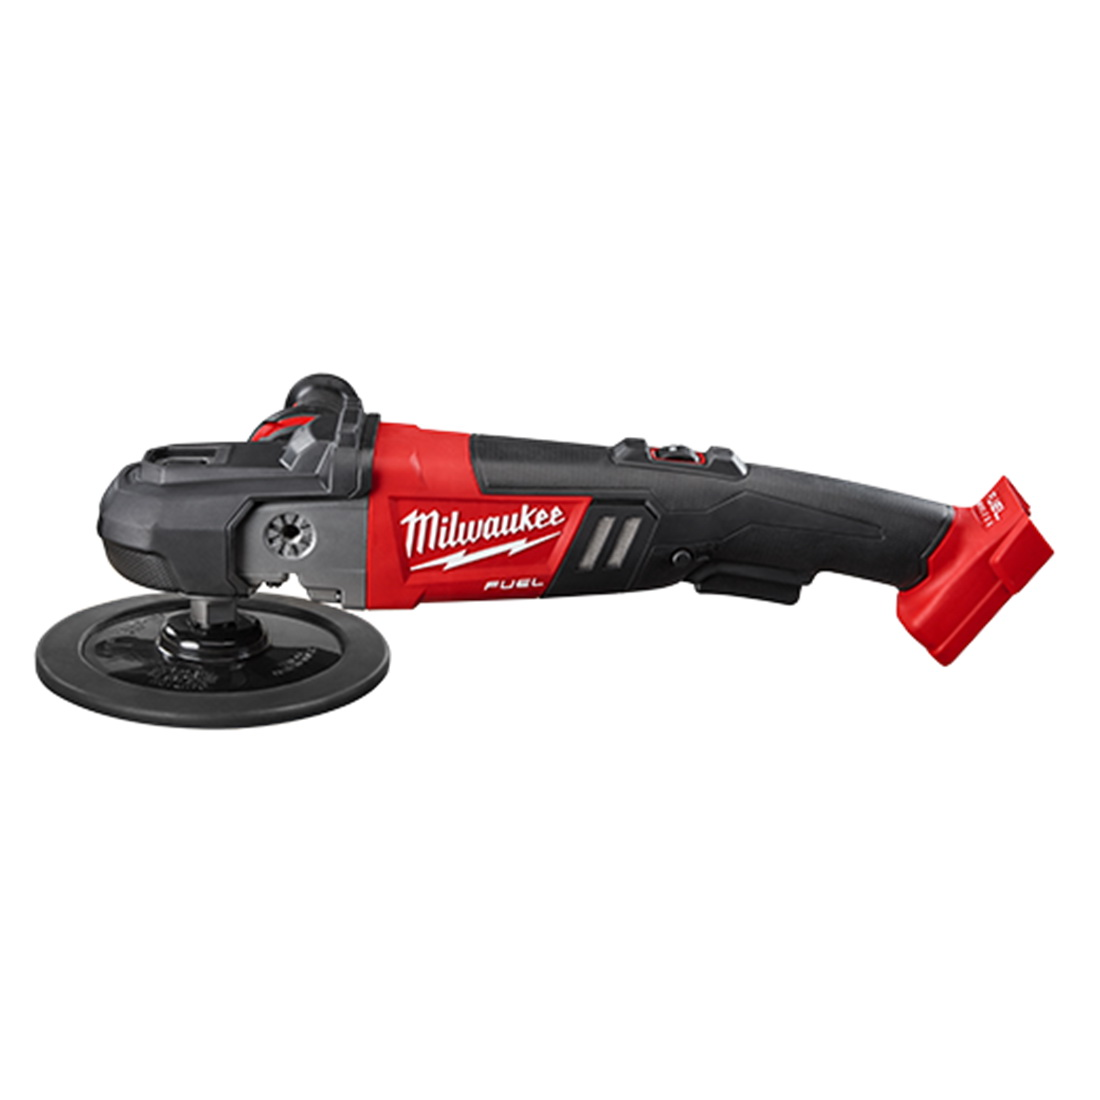 M18 FUEL Variable Speed Polisher